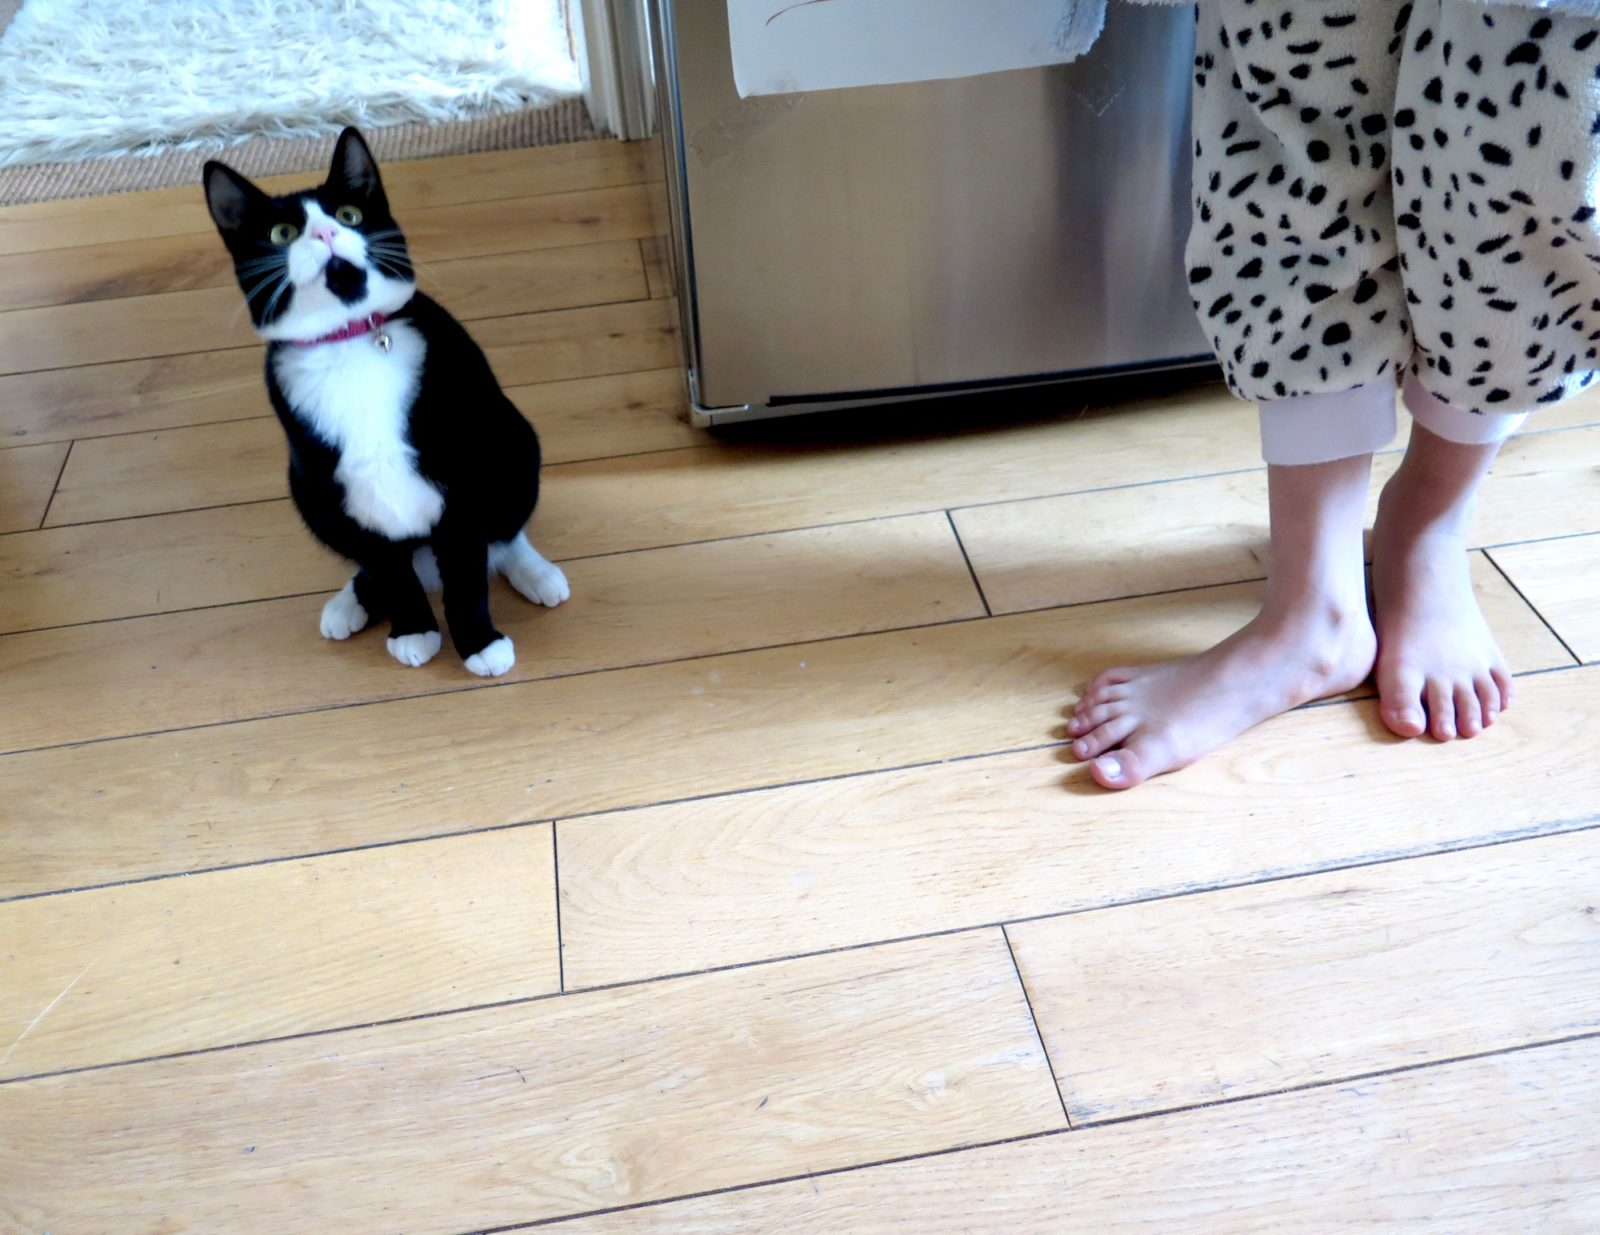 A black and white cat sitting on a kitchen floor looking upwards, next to a child's bare feet.